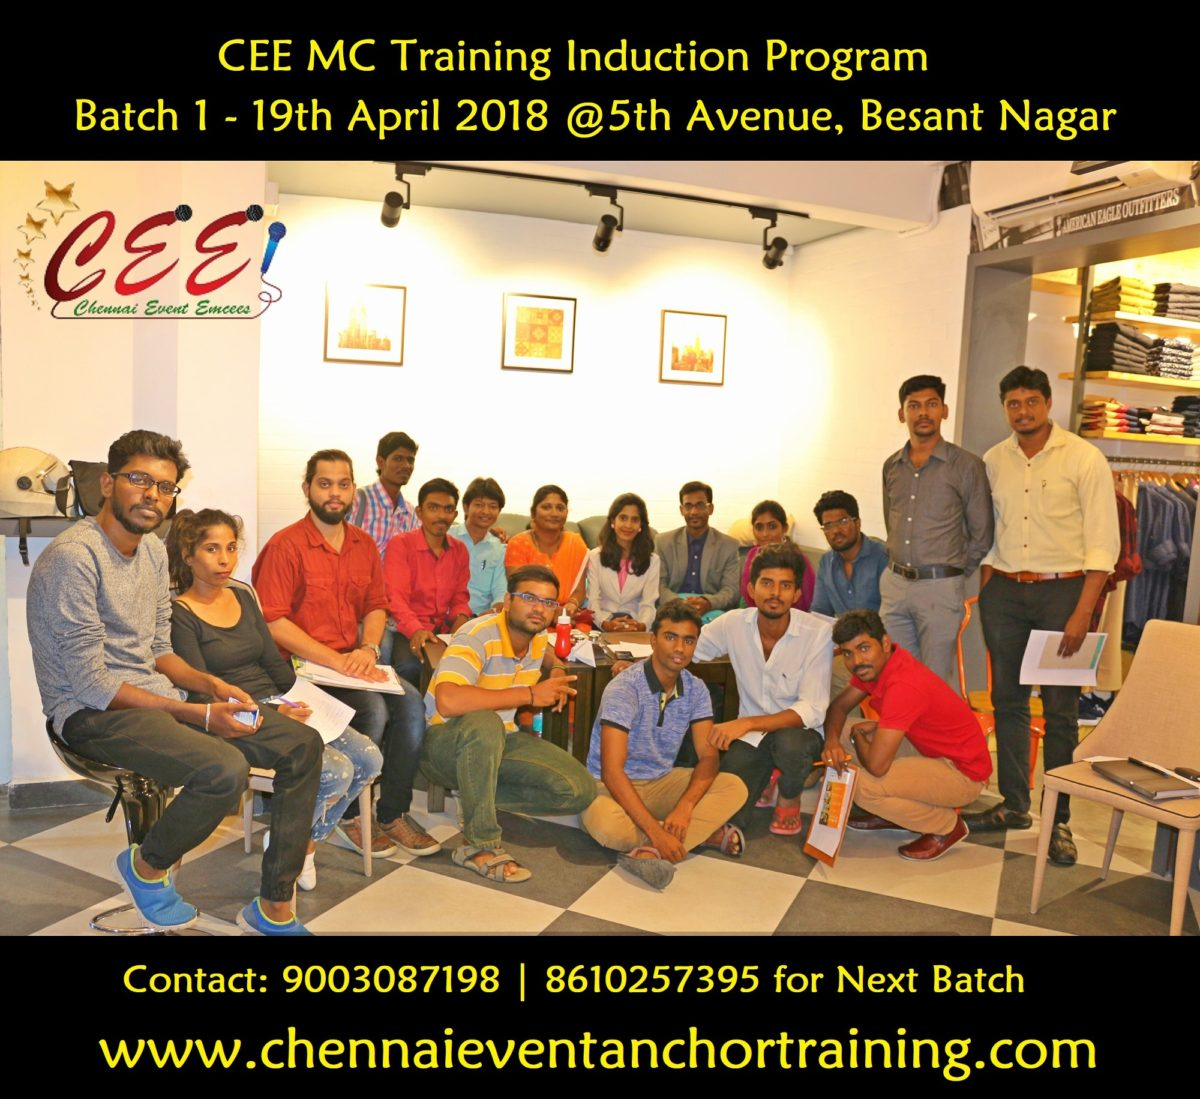 CEE MC Training Induction Program Batch One group Photo at 5th Avenue Besant Nagar